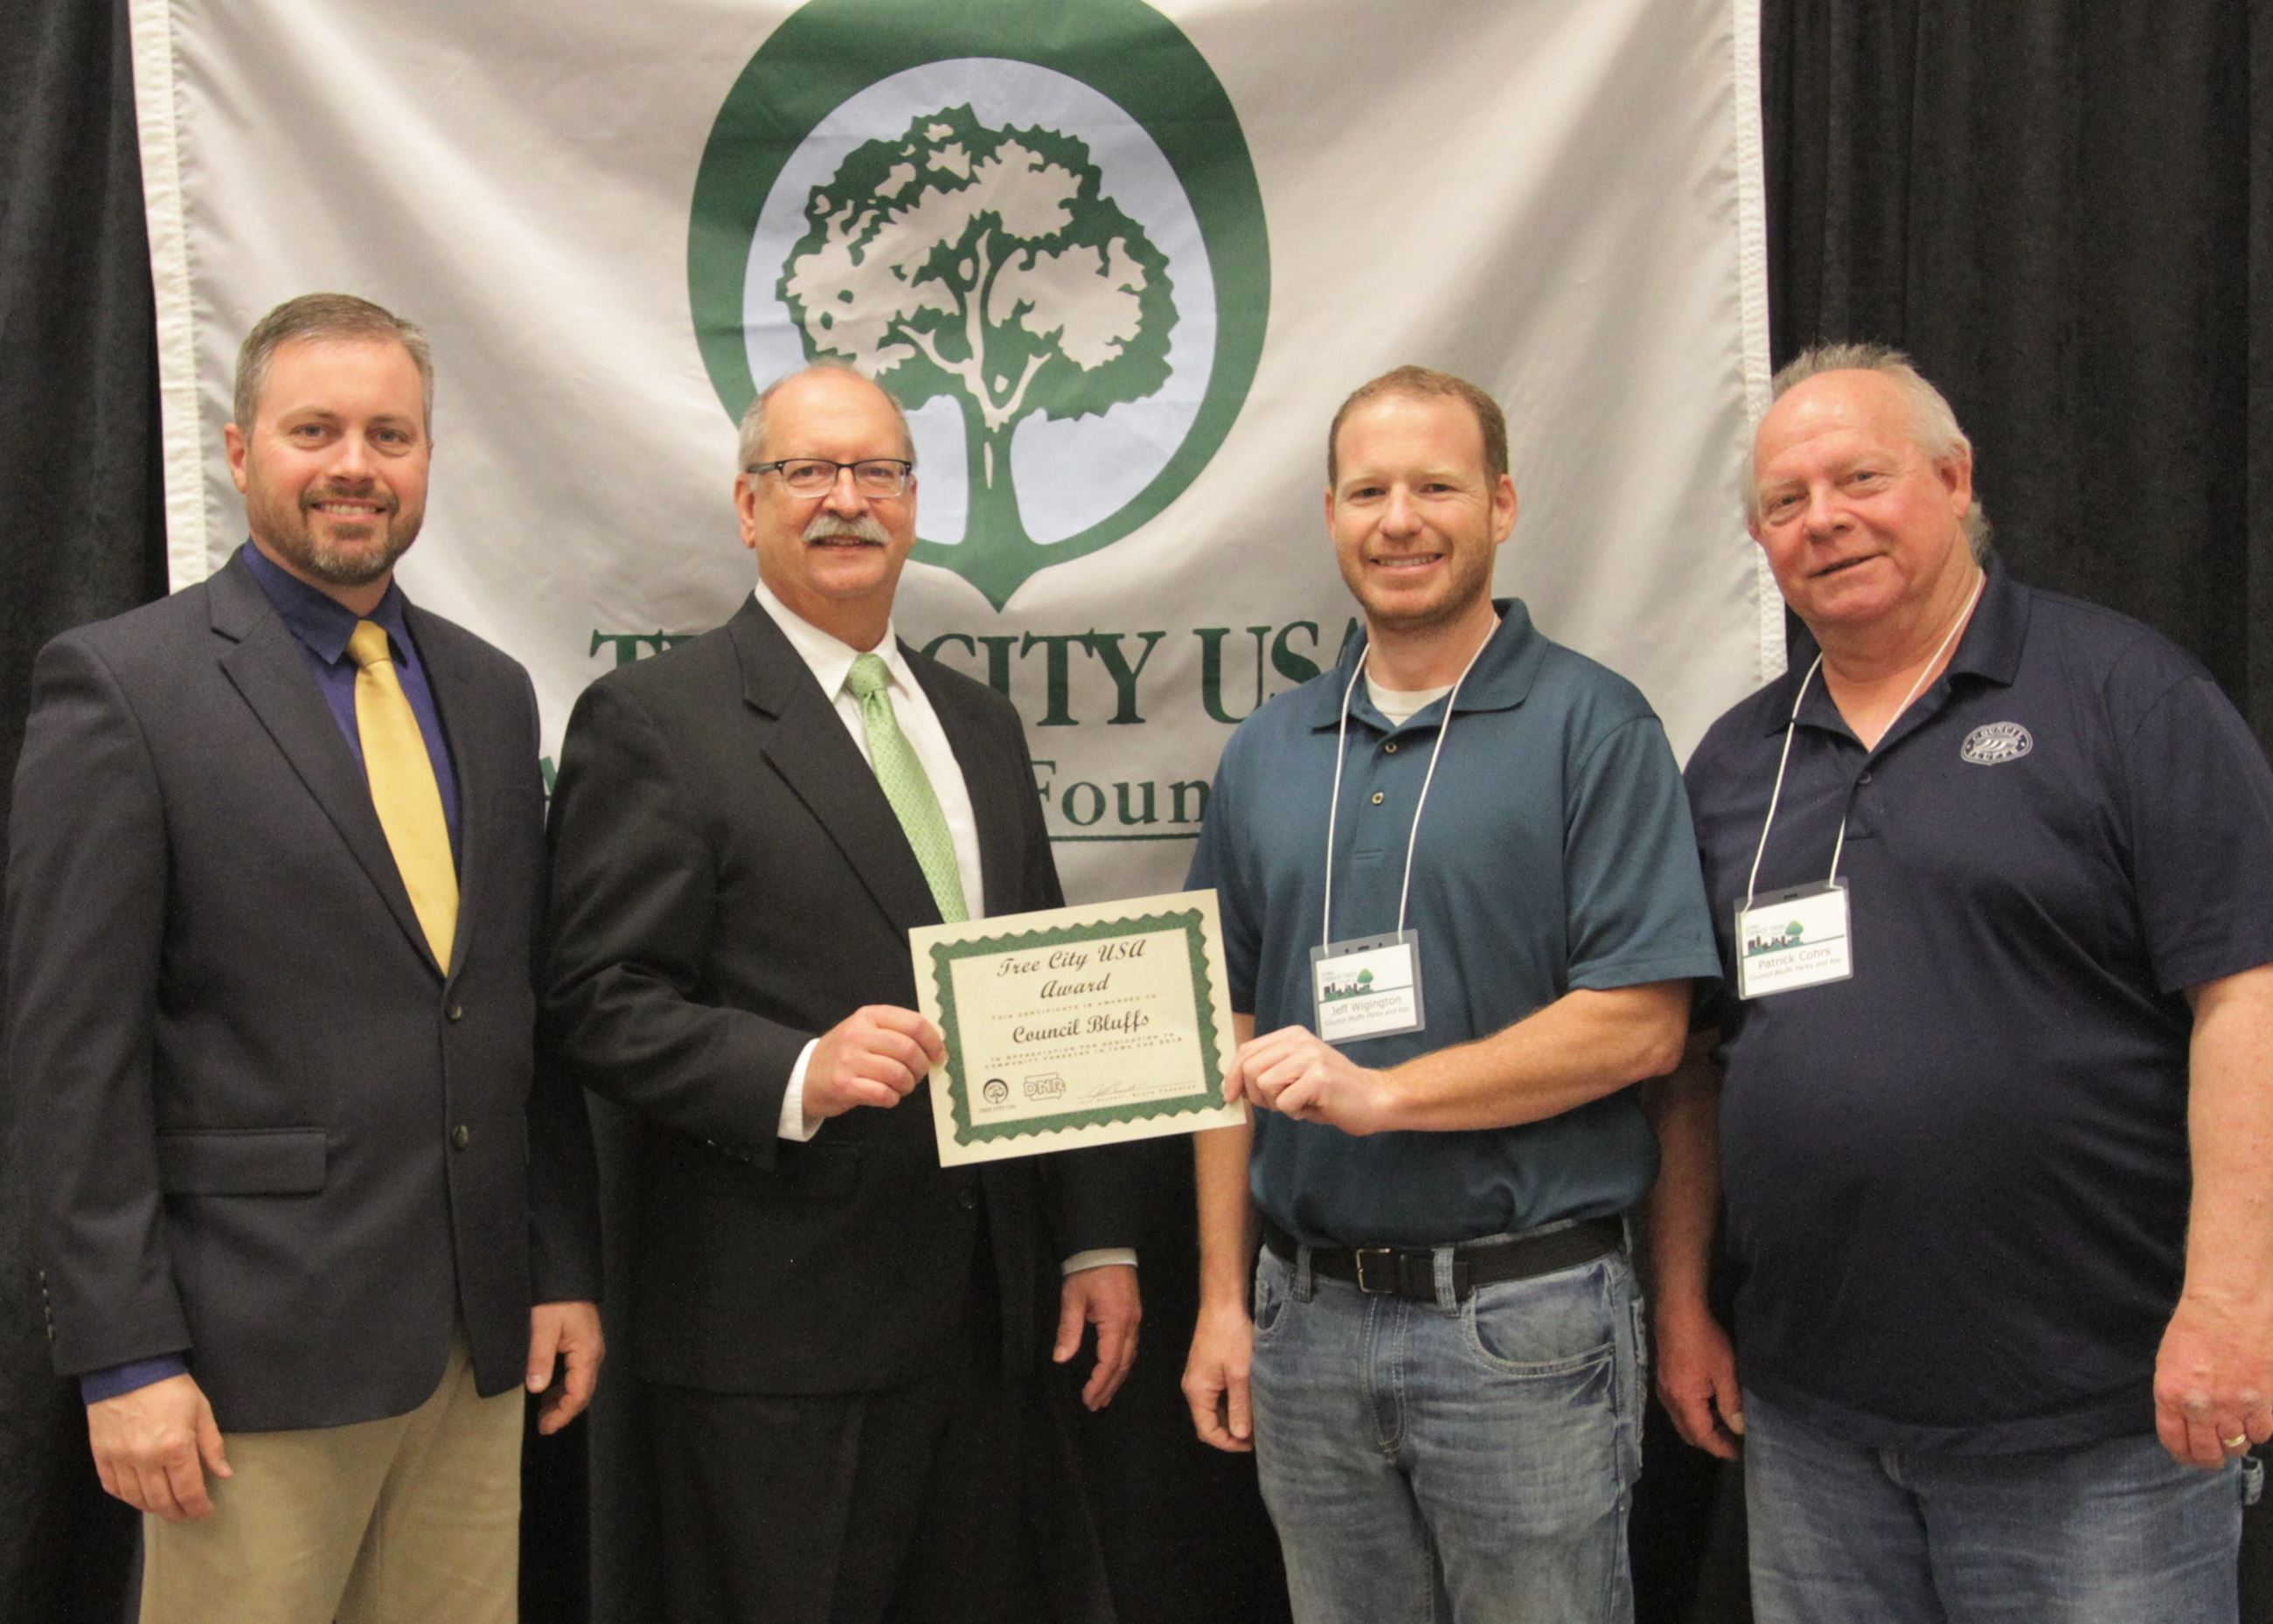 Council Bluffs Tree City USA Award